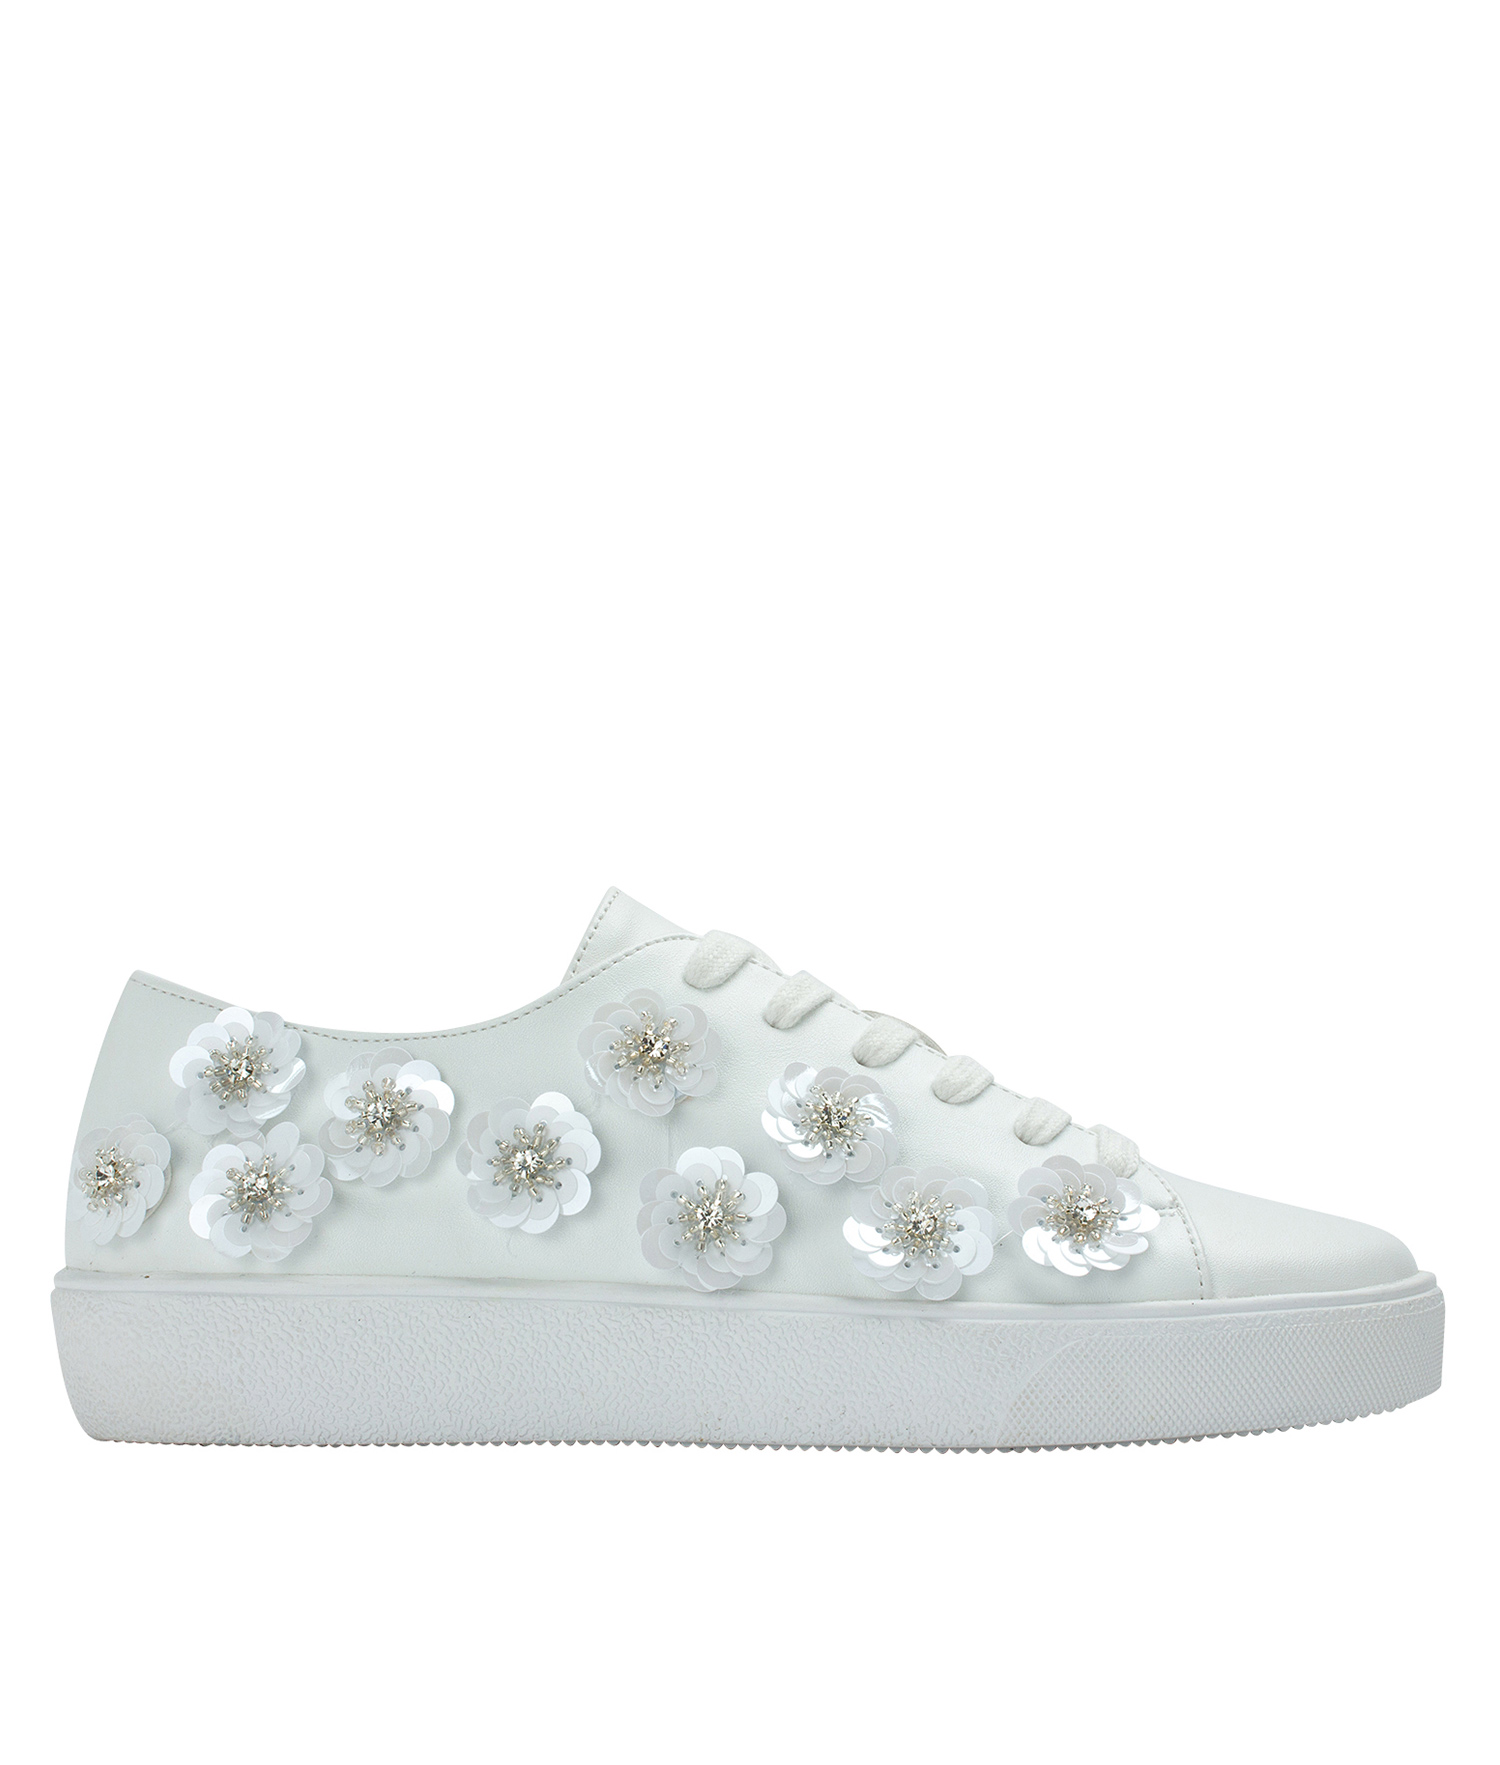 Annakastle Womens Sequin Flower Lace-Up Sneakers White 2eeb920f1d